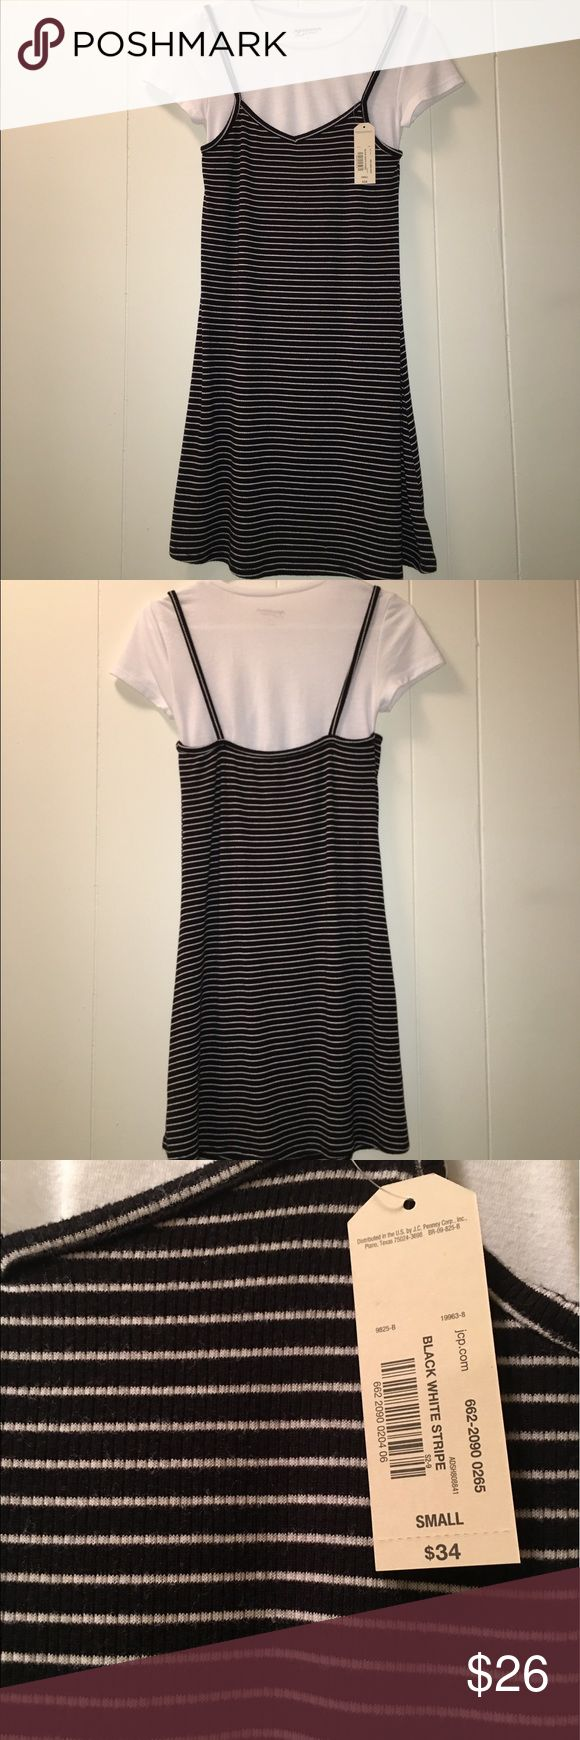 $34 JCPenney Black and White Rubber dress Small New with tag, so soft jcpenney Dresses Midi